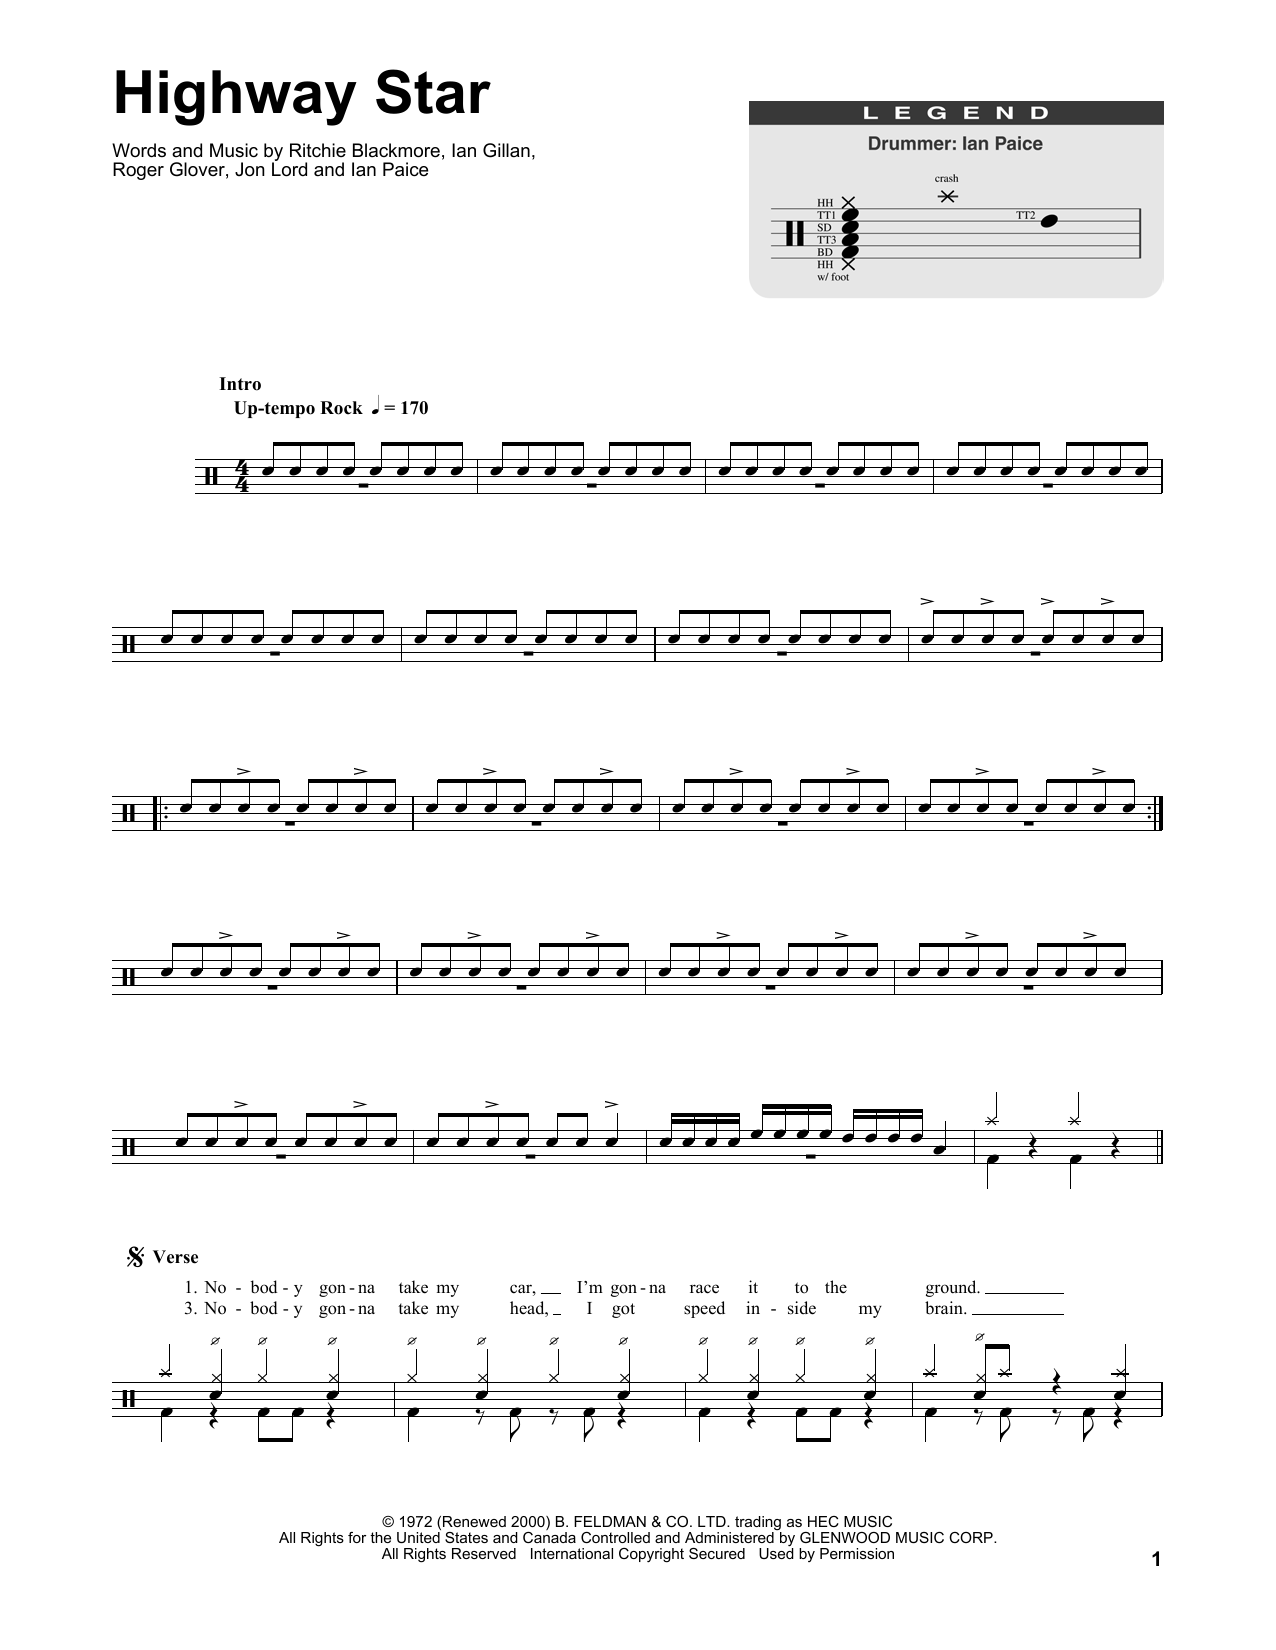 Highway Star Sheet Music